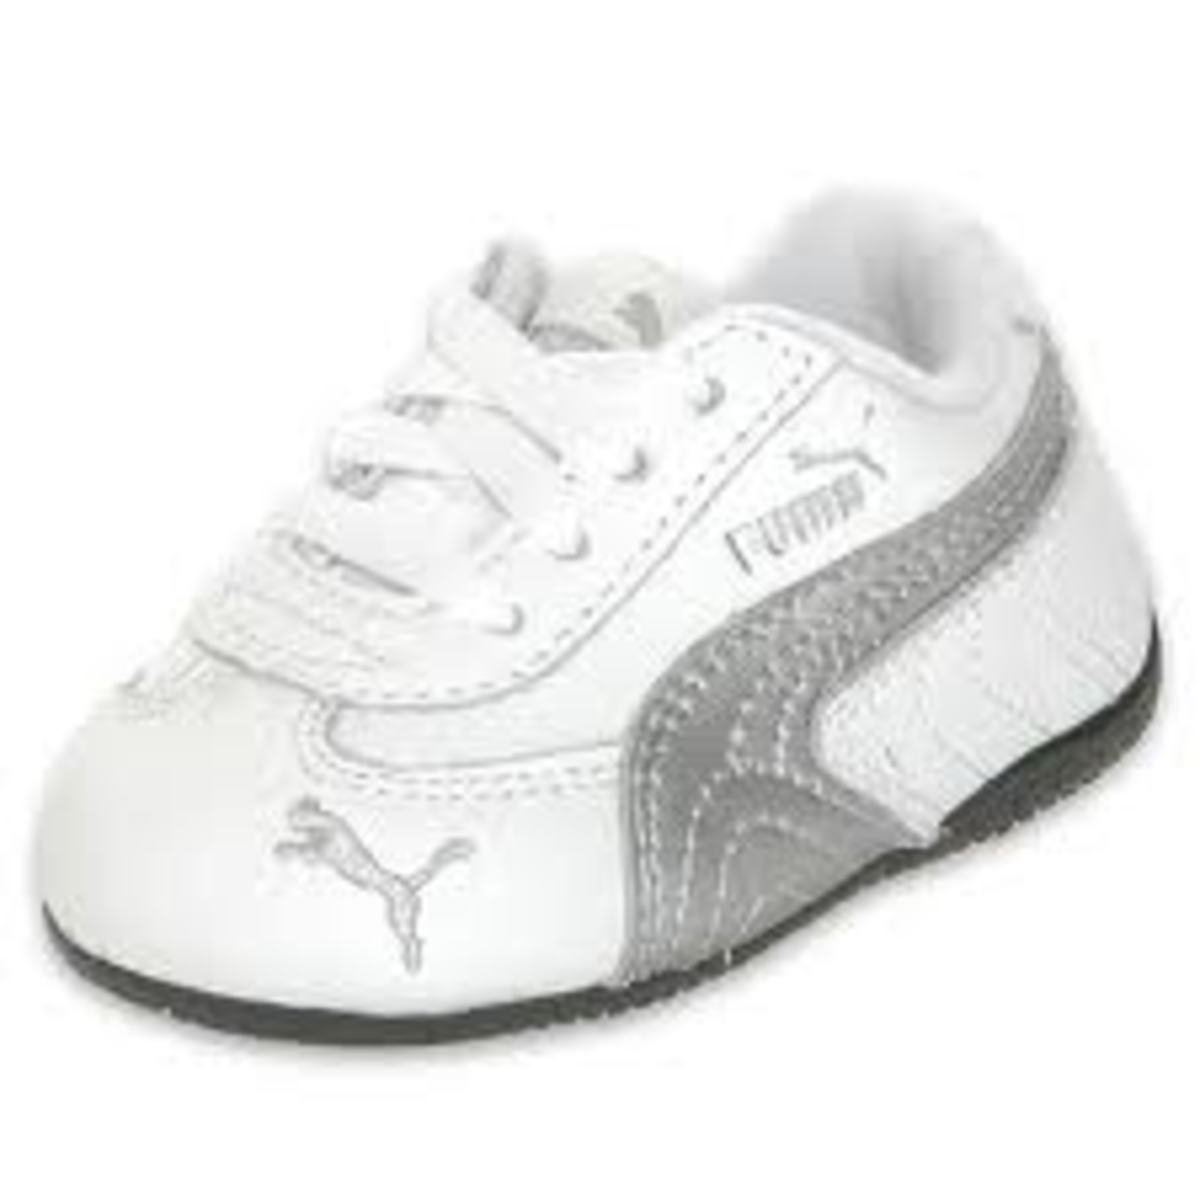 Trendy Toddler Puma Shoes for Baby Boys and Girls